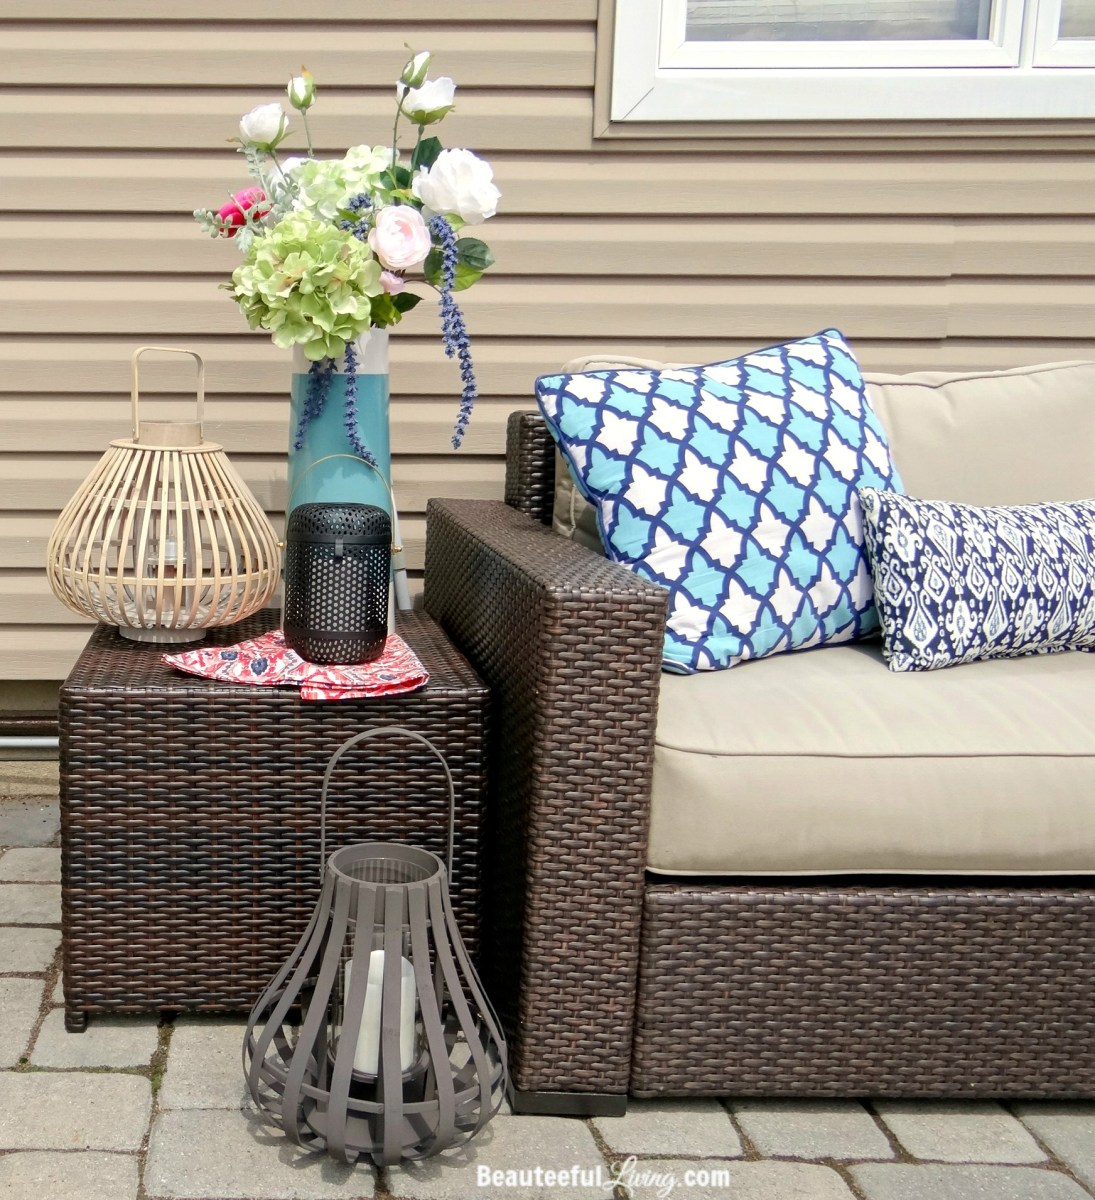 Outdoor Entertaining - Creating a Cozy Vibe